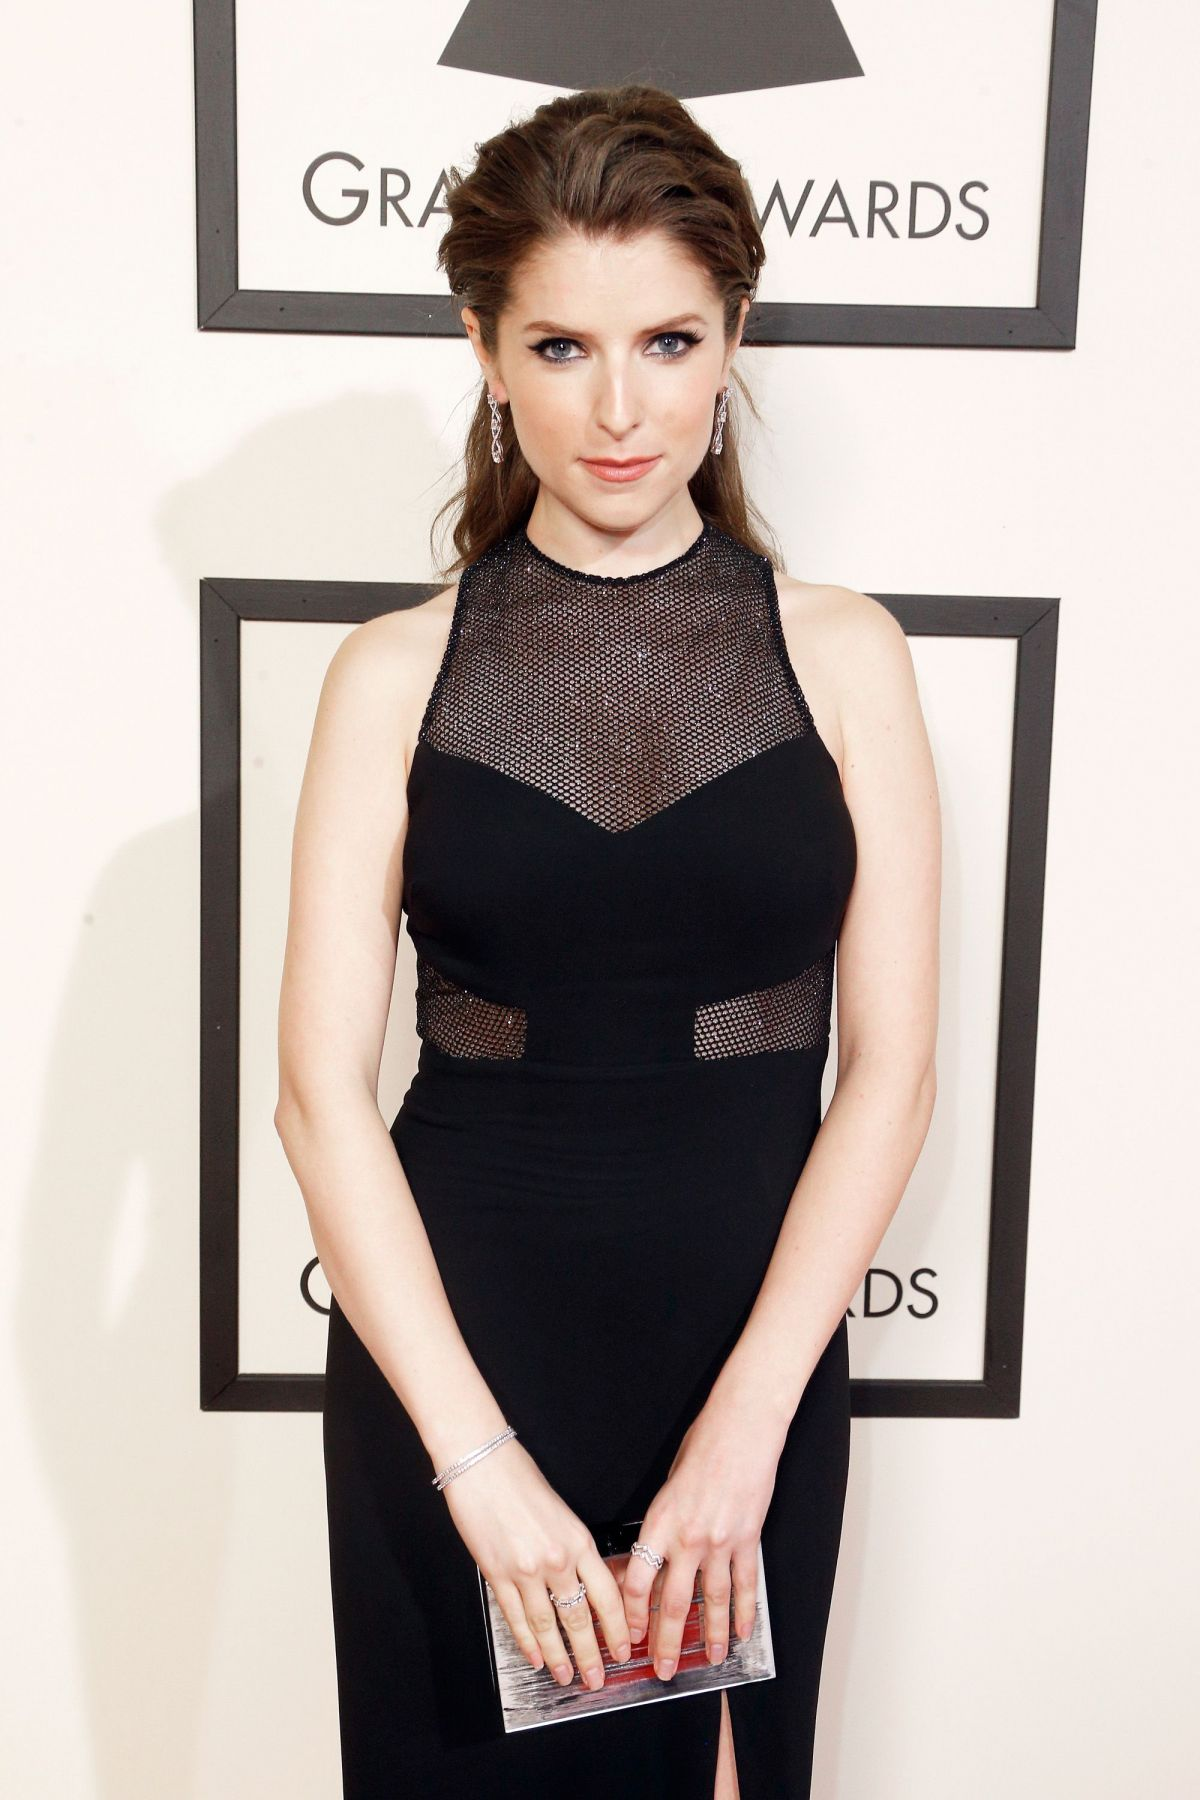 ANNA KENDRICK at Grammy Awards 2016 in Los Angeles 02/15/2016